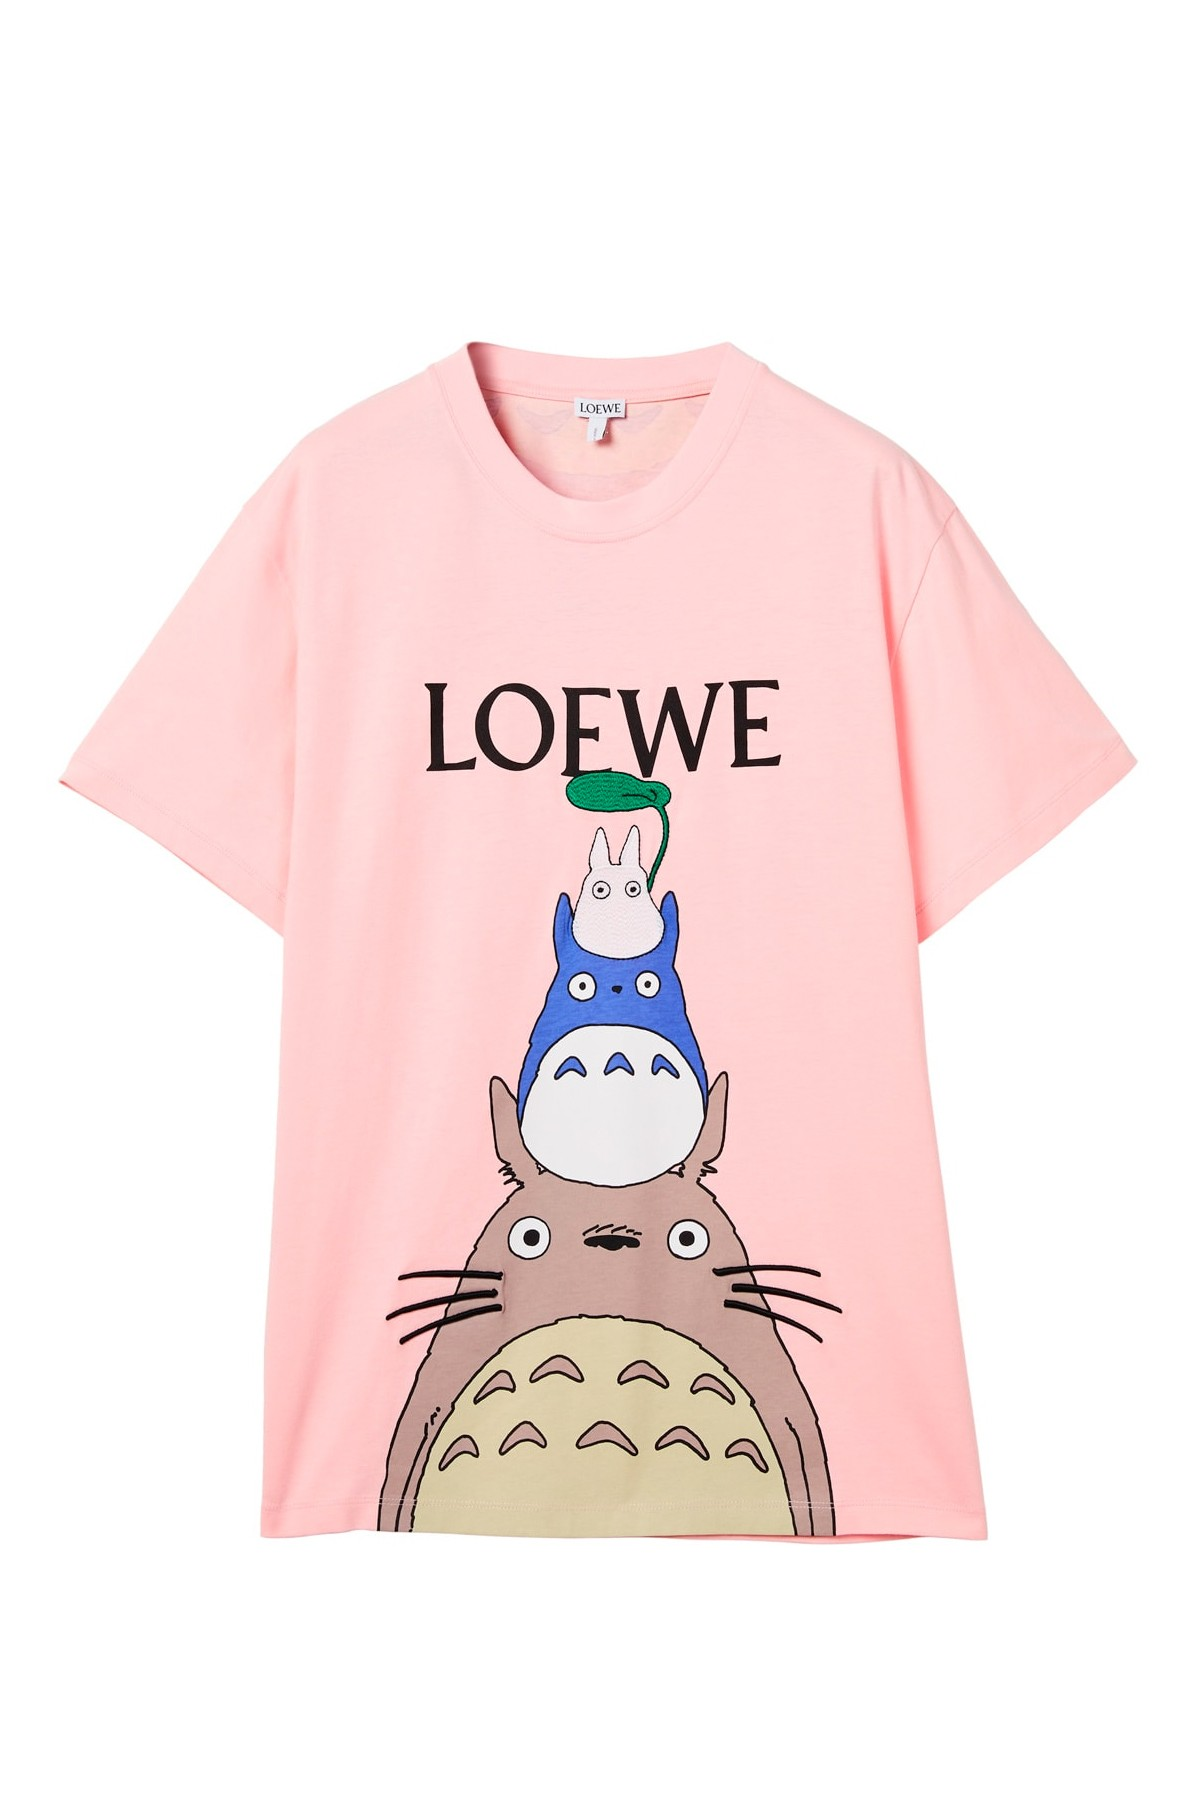 loewe totoro puzzle balloon collabration when where buy 2020 jan